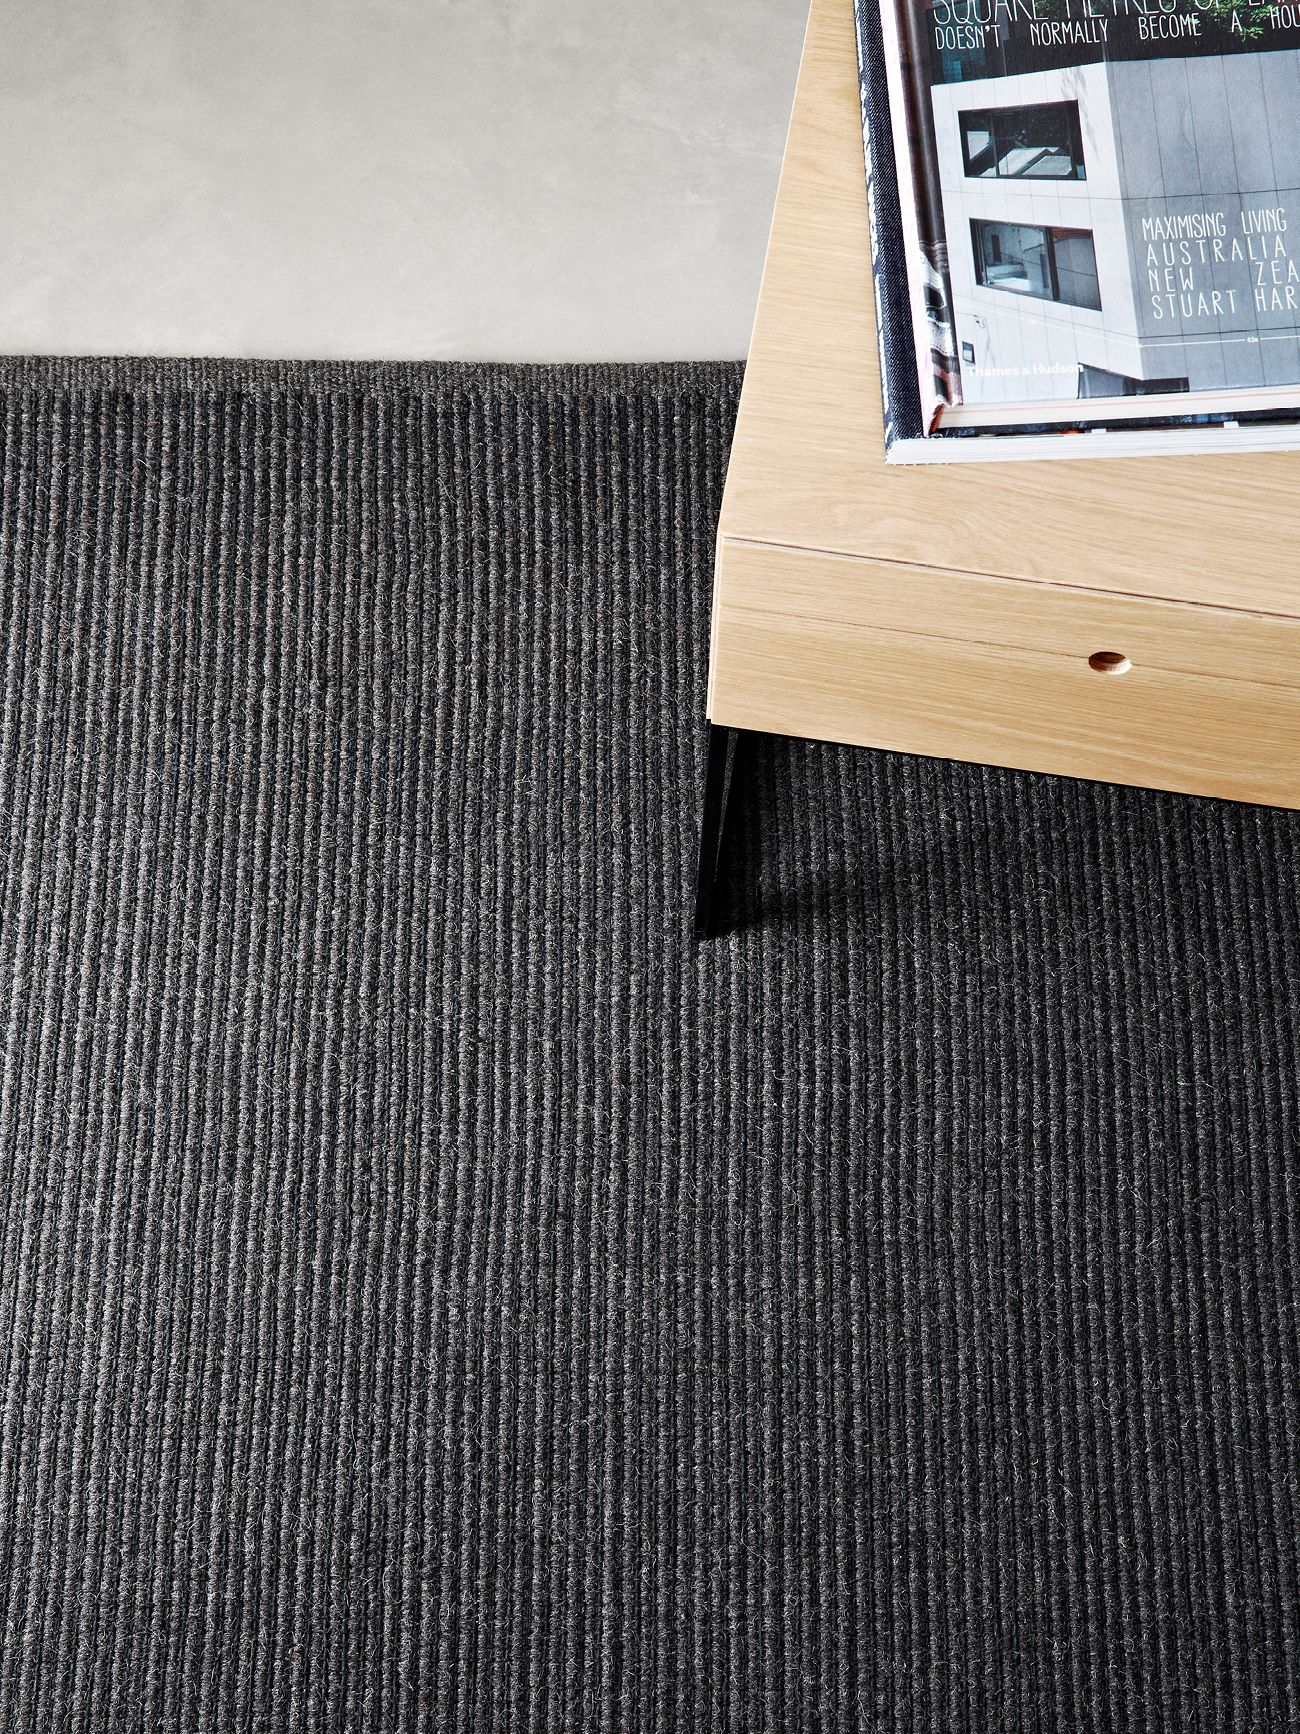 Subtle Meandering Stripes Give An Understated Elegance And Masculinity With Warmth Depth